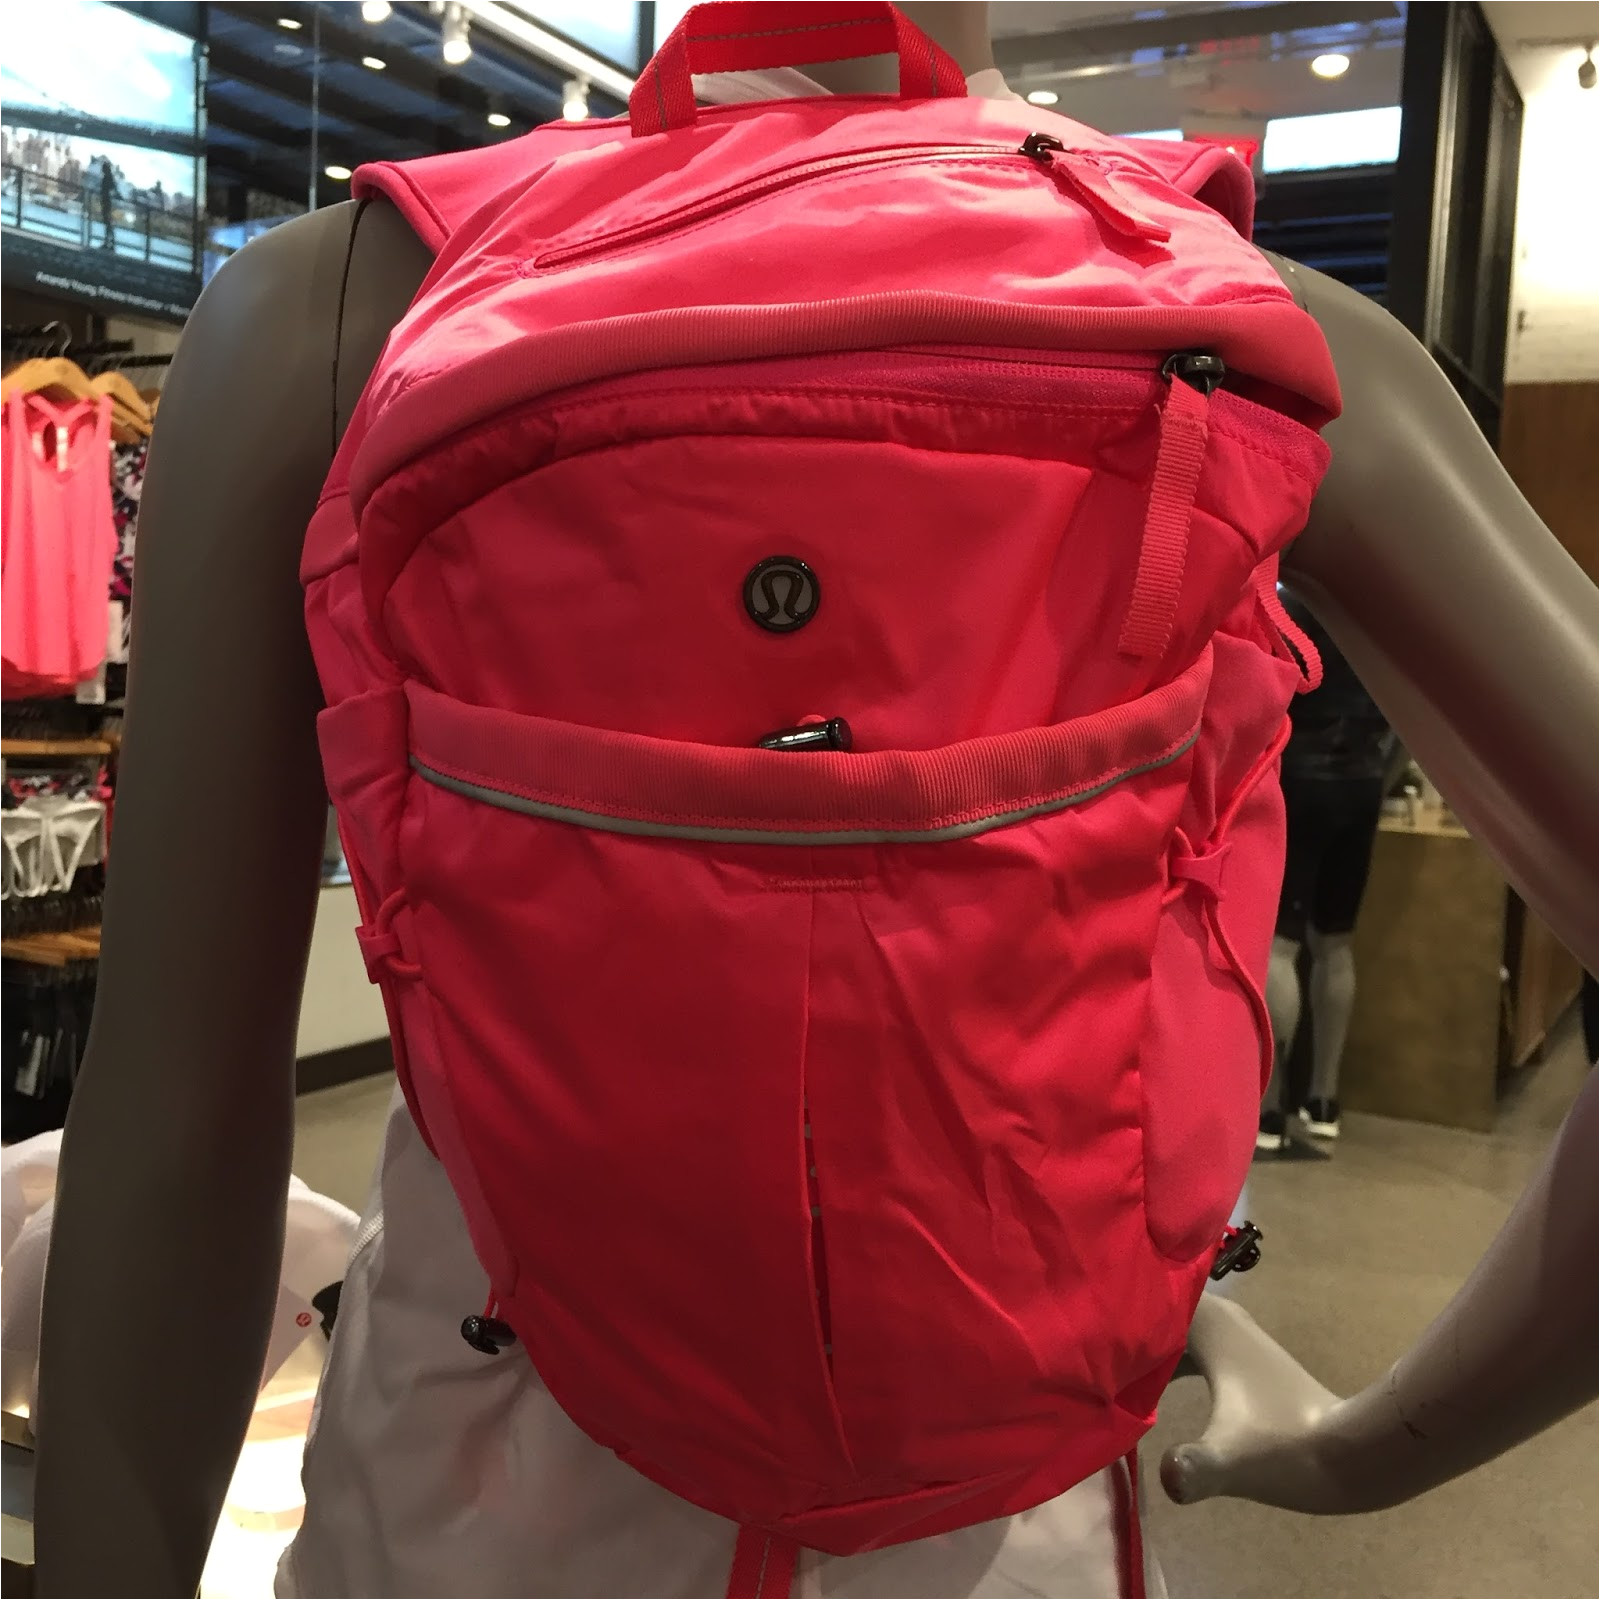 first thing i spotted was the new run all day backpack in neon pink super cute i have to remind myself that i already have one and do not need another